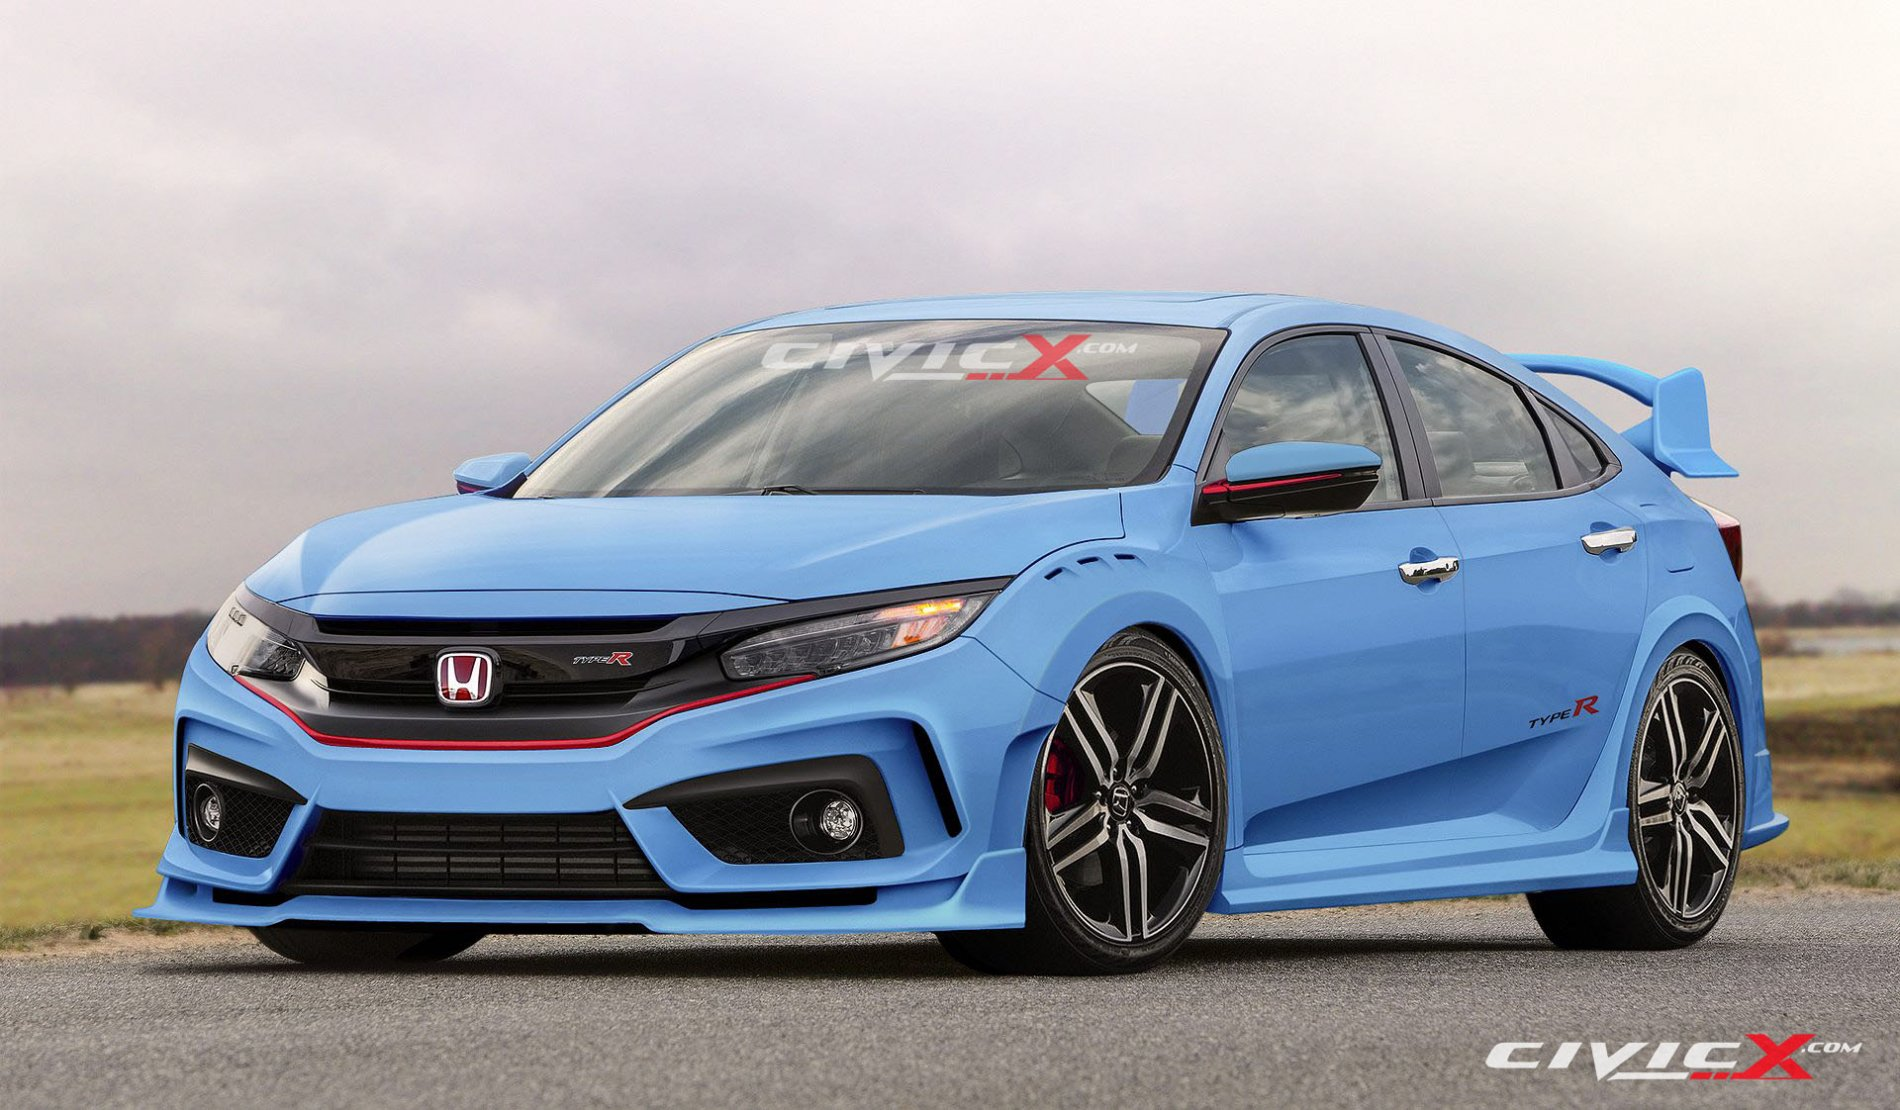 2017 honda civic type r looks ready to summon satan in. Black Bedroom Furniture Sets. Home Design Ideas